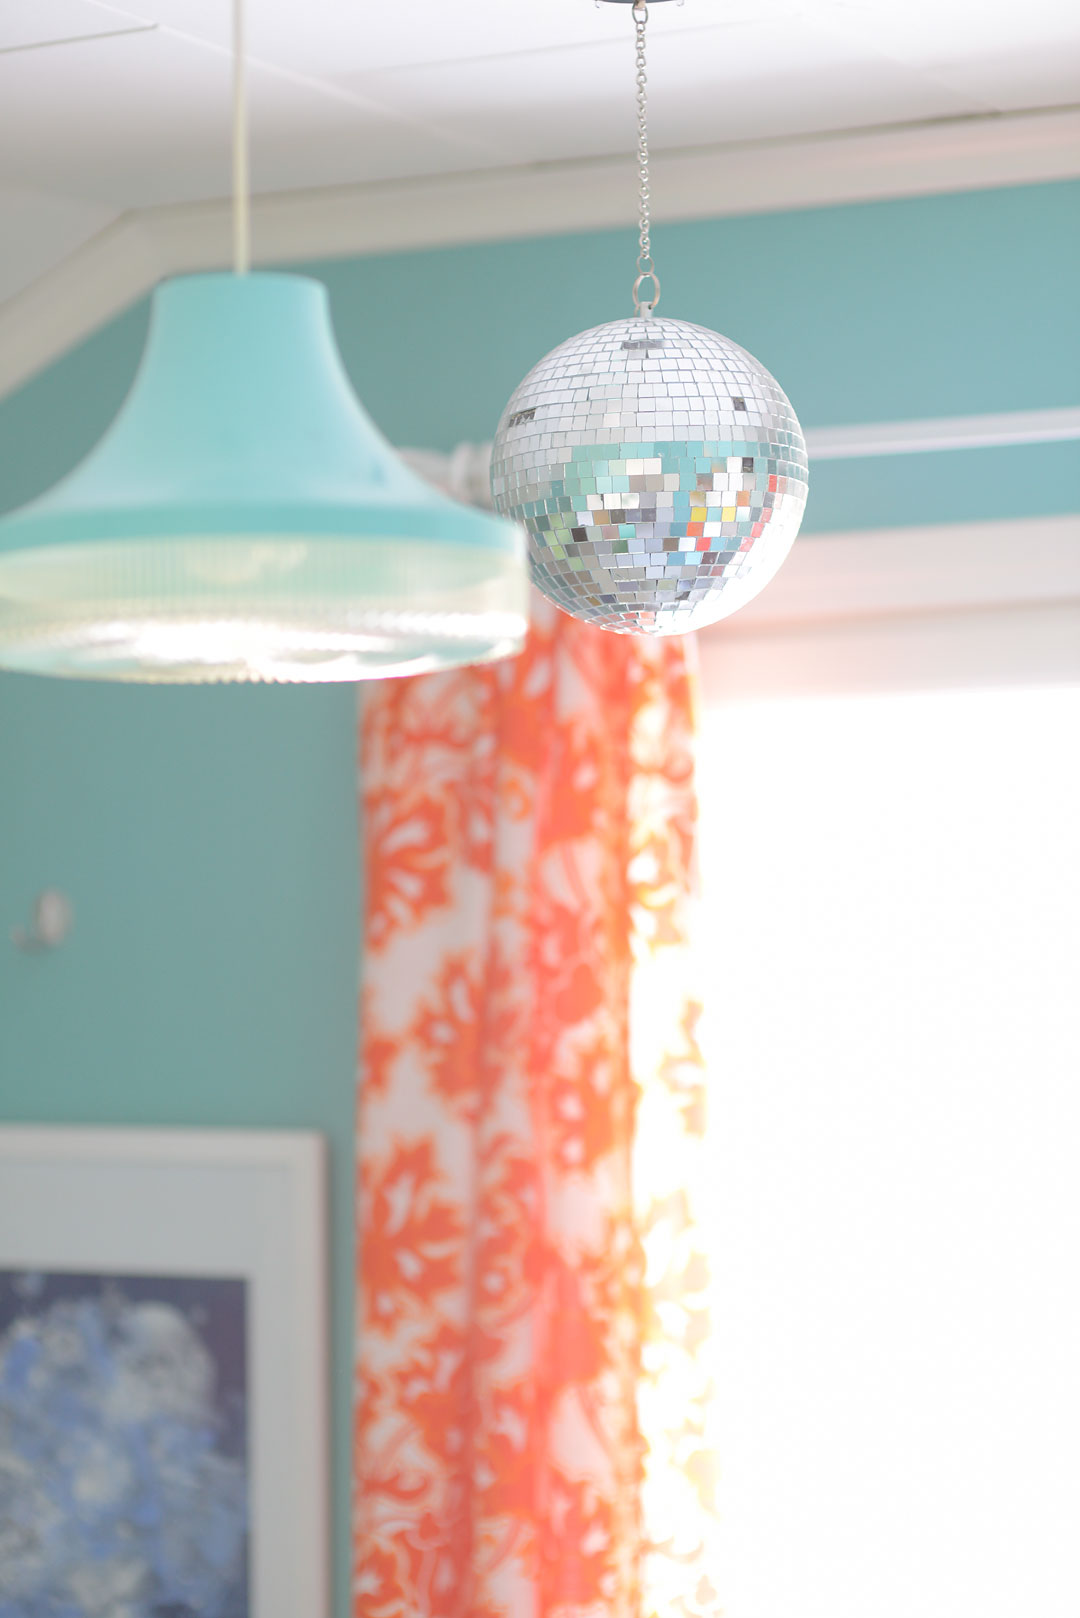 Disco ball in the kids room